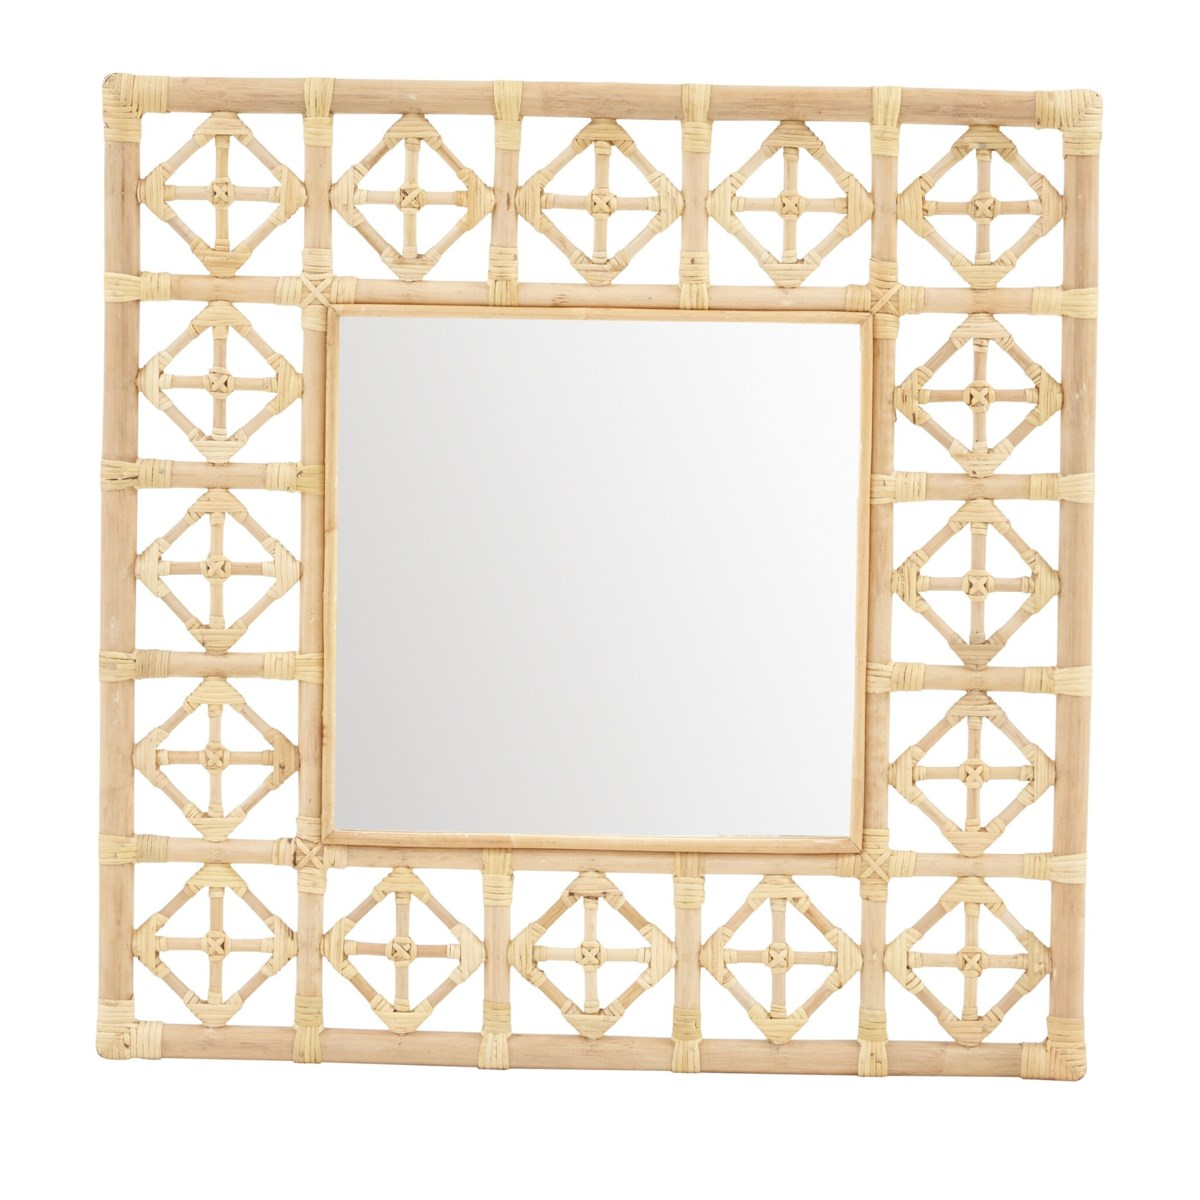 """Square Diamond Pattern Mirror  Color  - Natural  Mirror Size 16 x 16""""  CLOSE-OUT - 50% OFF!SOLD"""